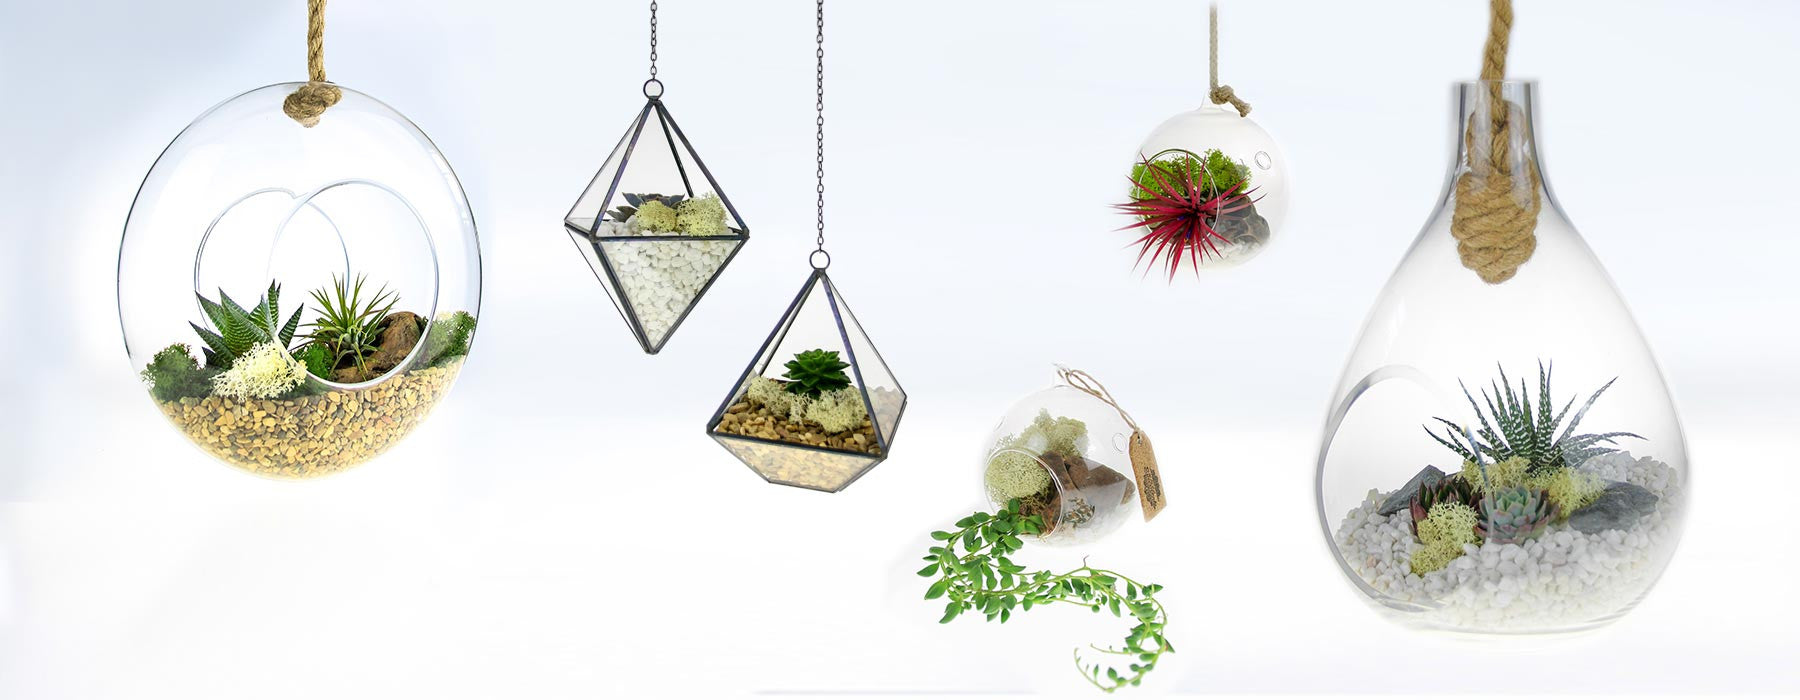 Hanging Terrarium Kits Home Accessory Ideas Uk The Art Of Succulents